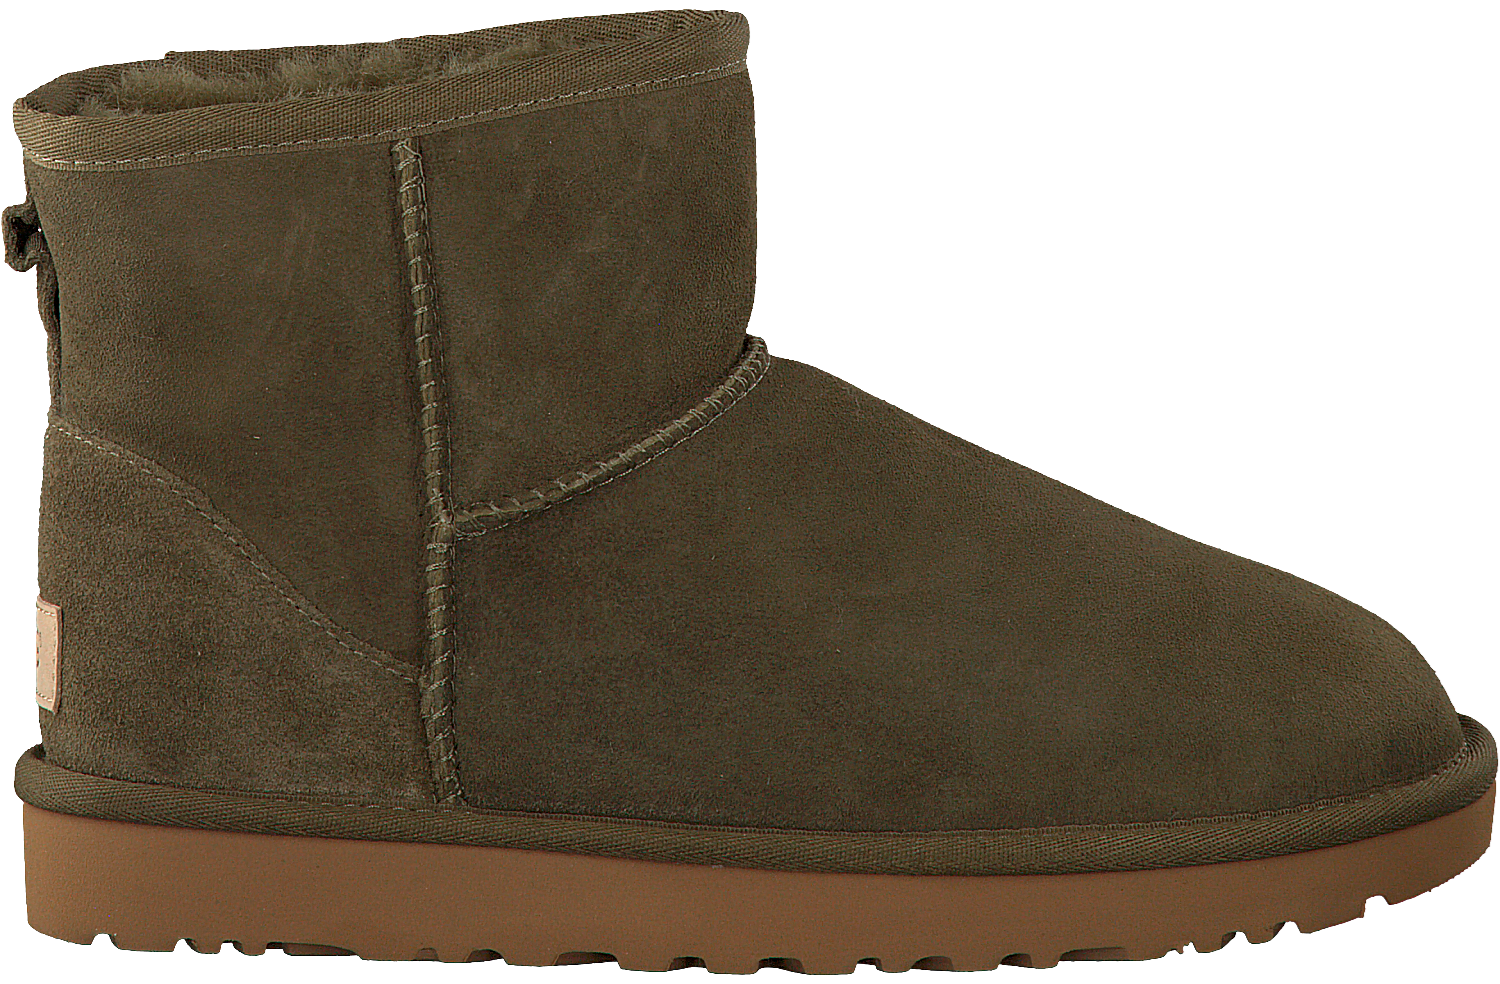 Grüne UGG Winterstiefel CLASSIC MINI II | Omoda.at